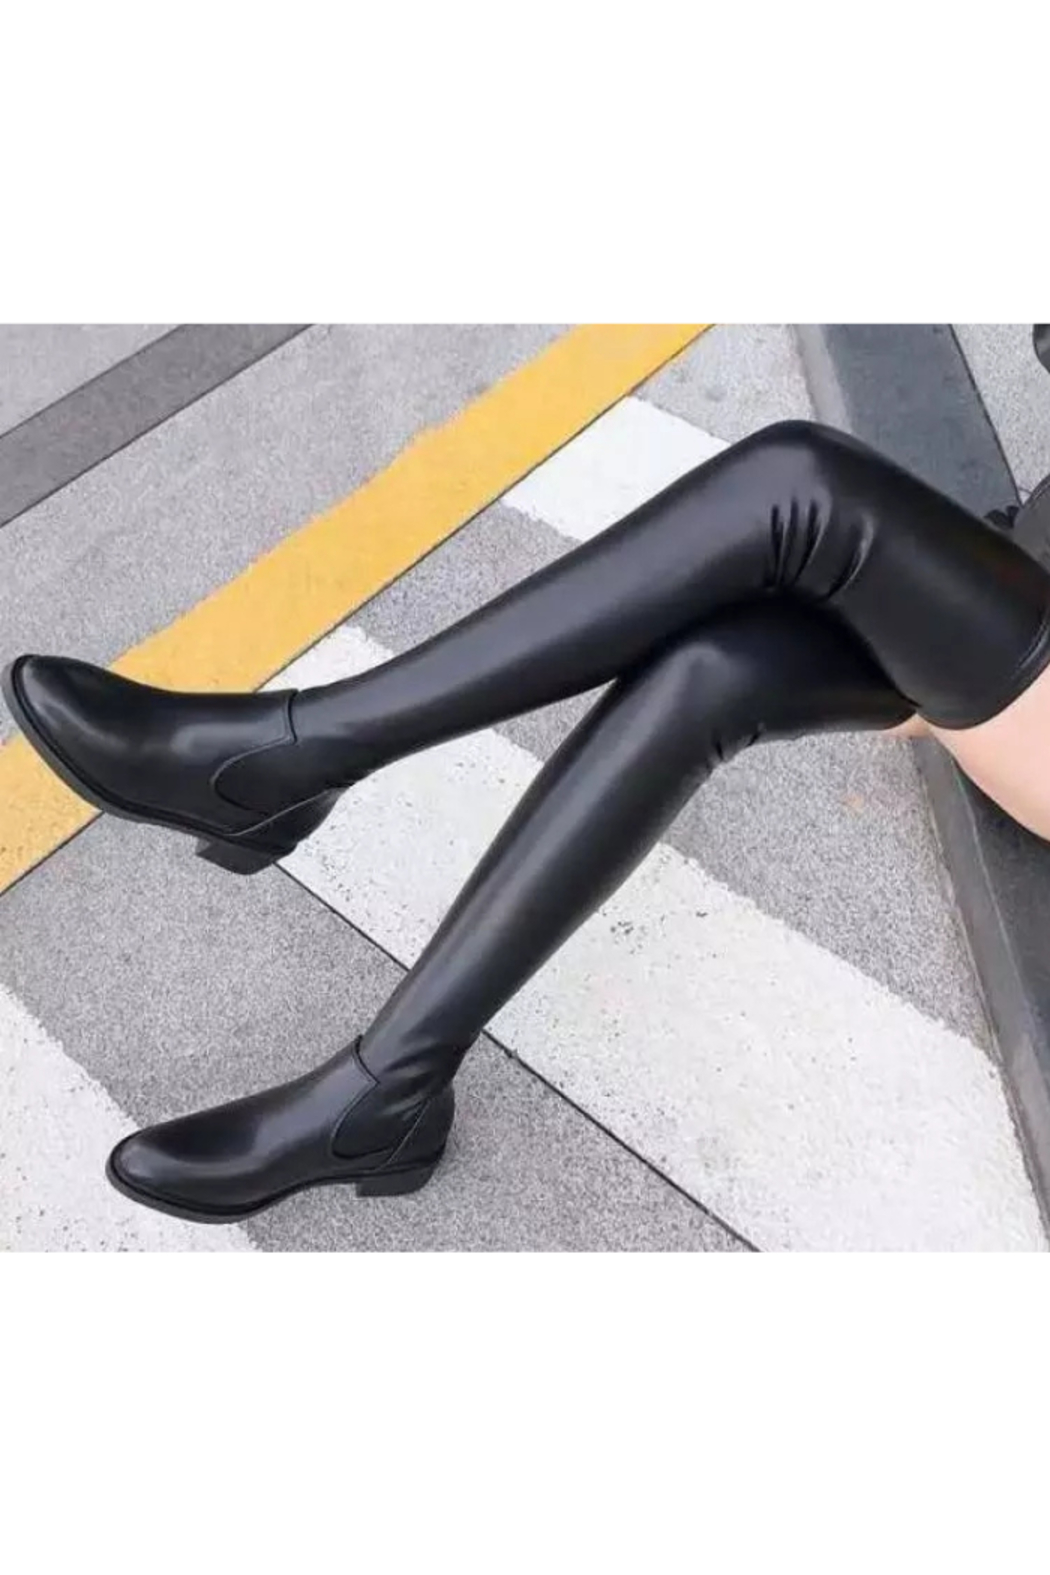 Tiny House of Fashion Black Thigh High Boots - Front Full Image